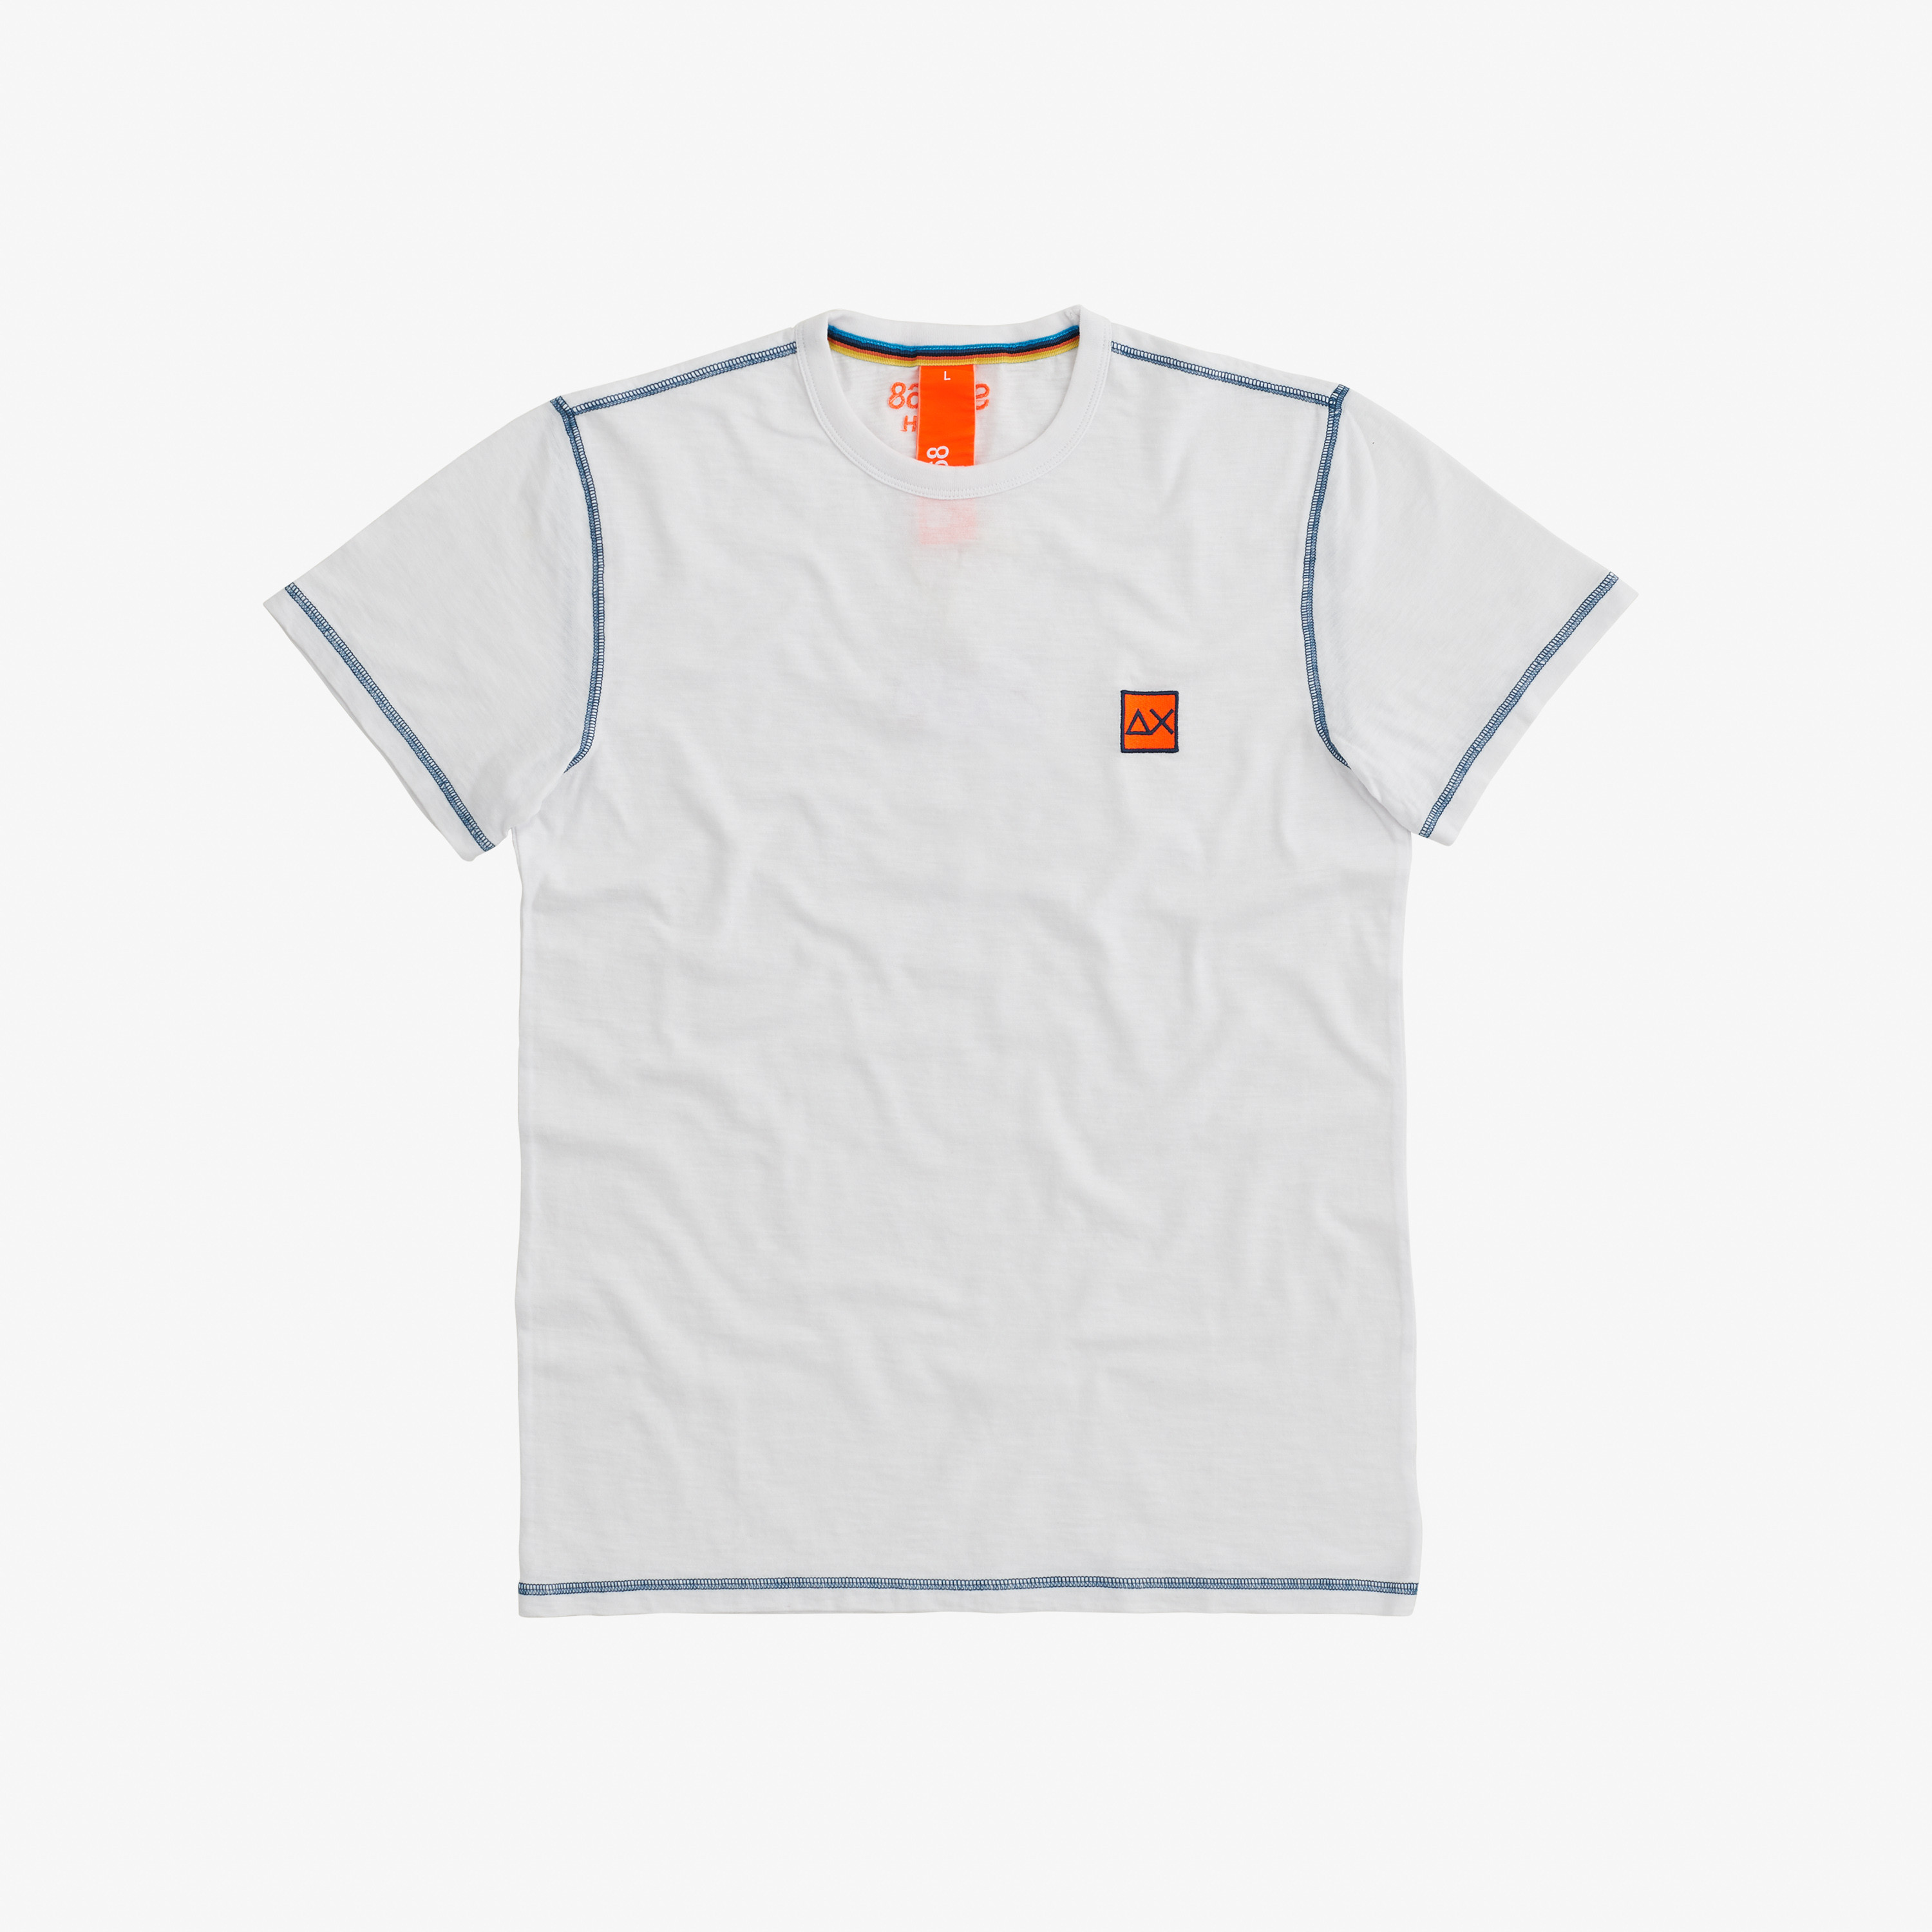 T-SHIRT COLD DYE CONTRAST STITCHING WHITE